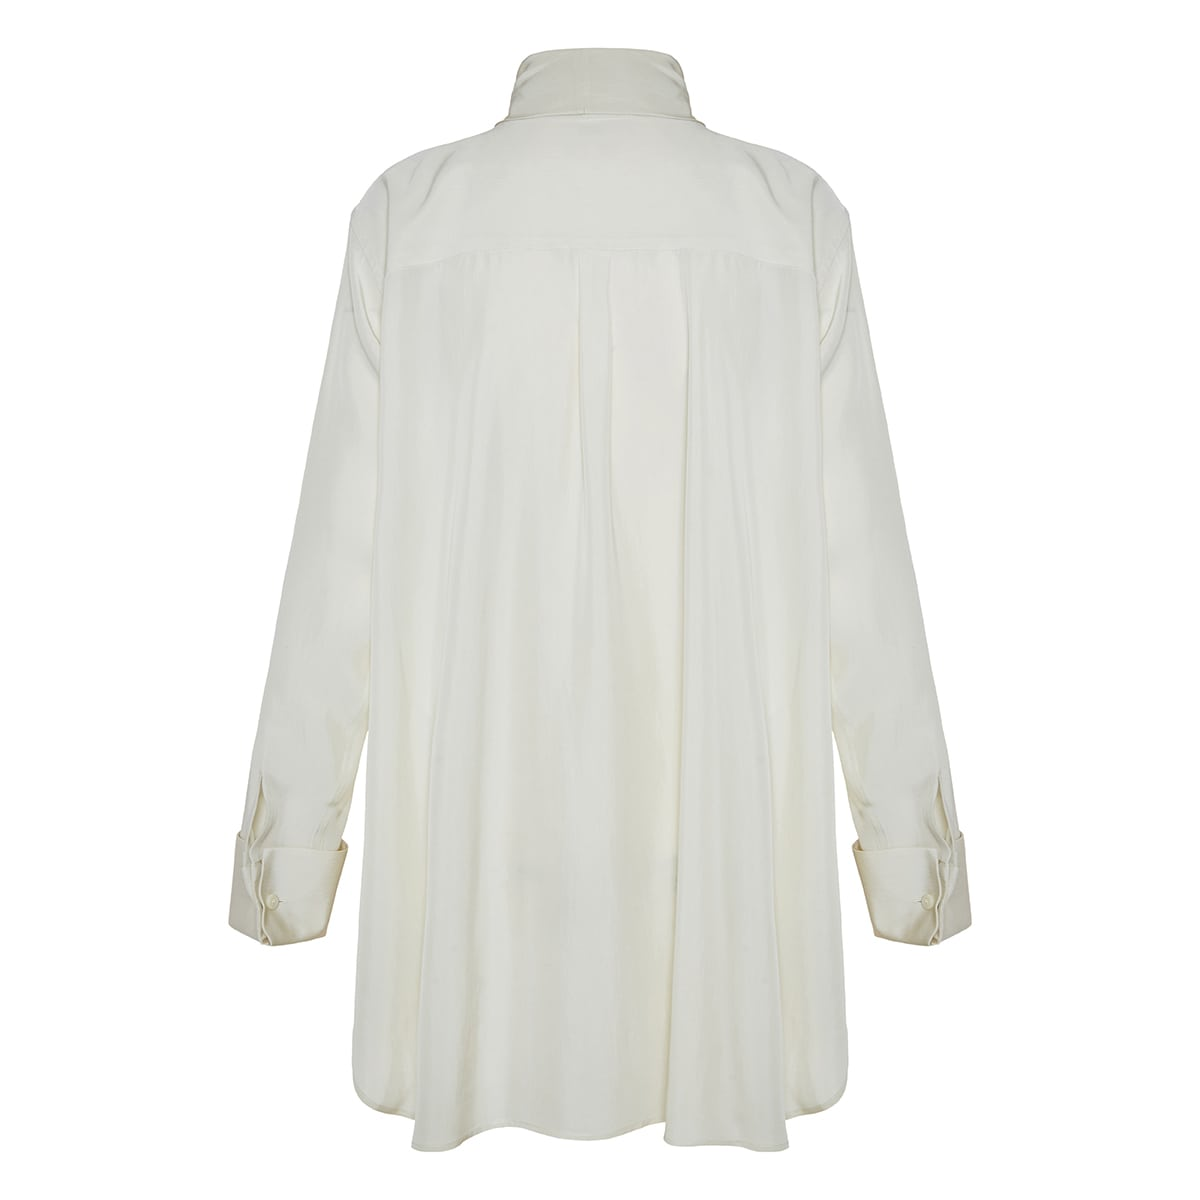 Anagram-scarf oversized silk shirt